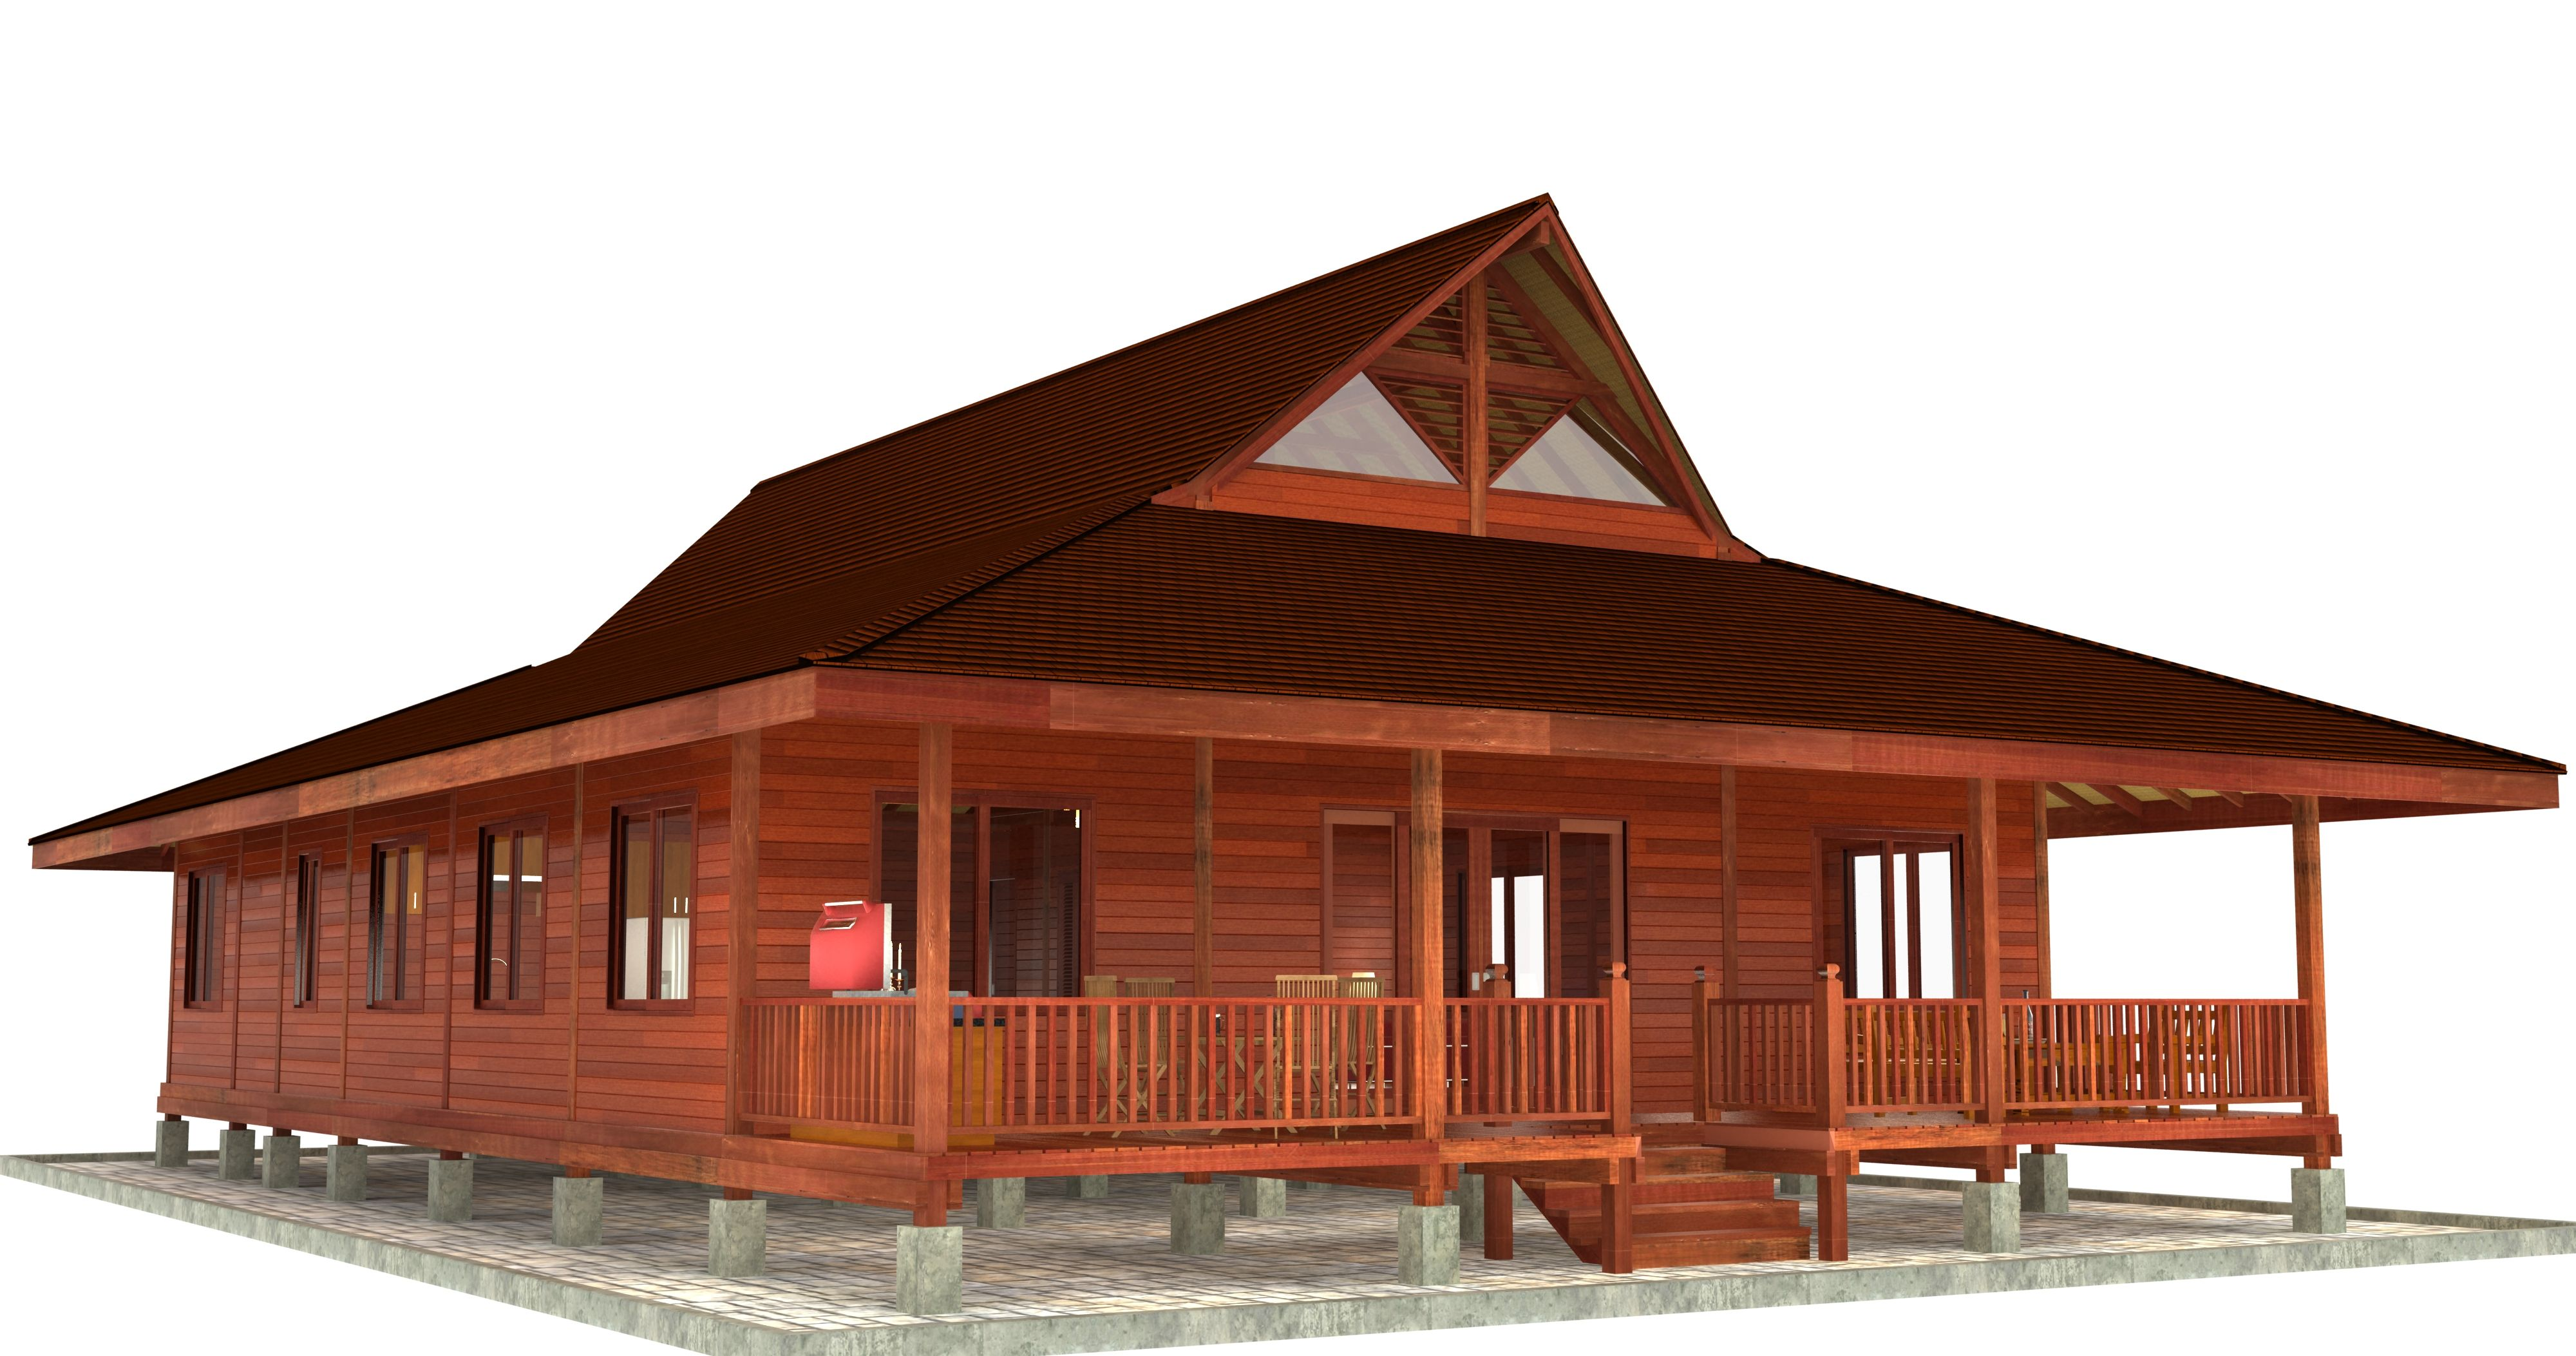 Bali Floor Plans: And as is possible with all Teak Bali models, the Rain Forest Retreat can be altered to our clients tastes in this case with the possibility of adding in a 3rd bedroom.